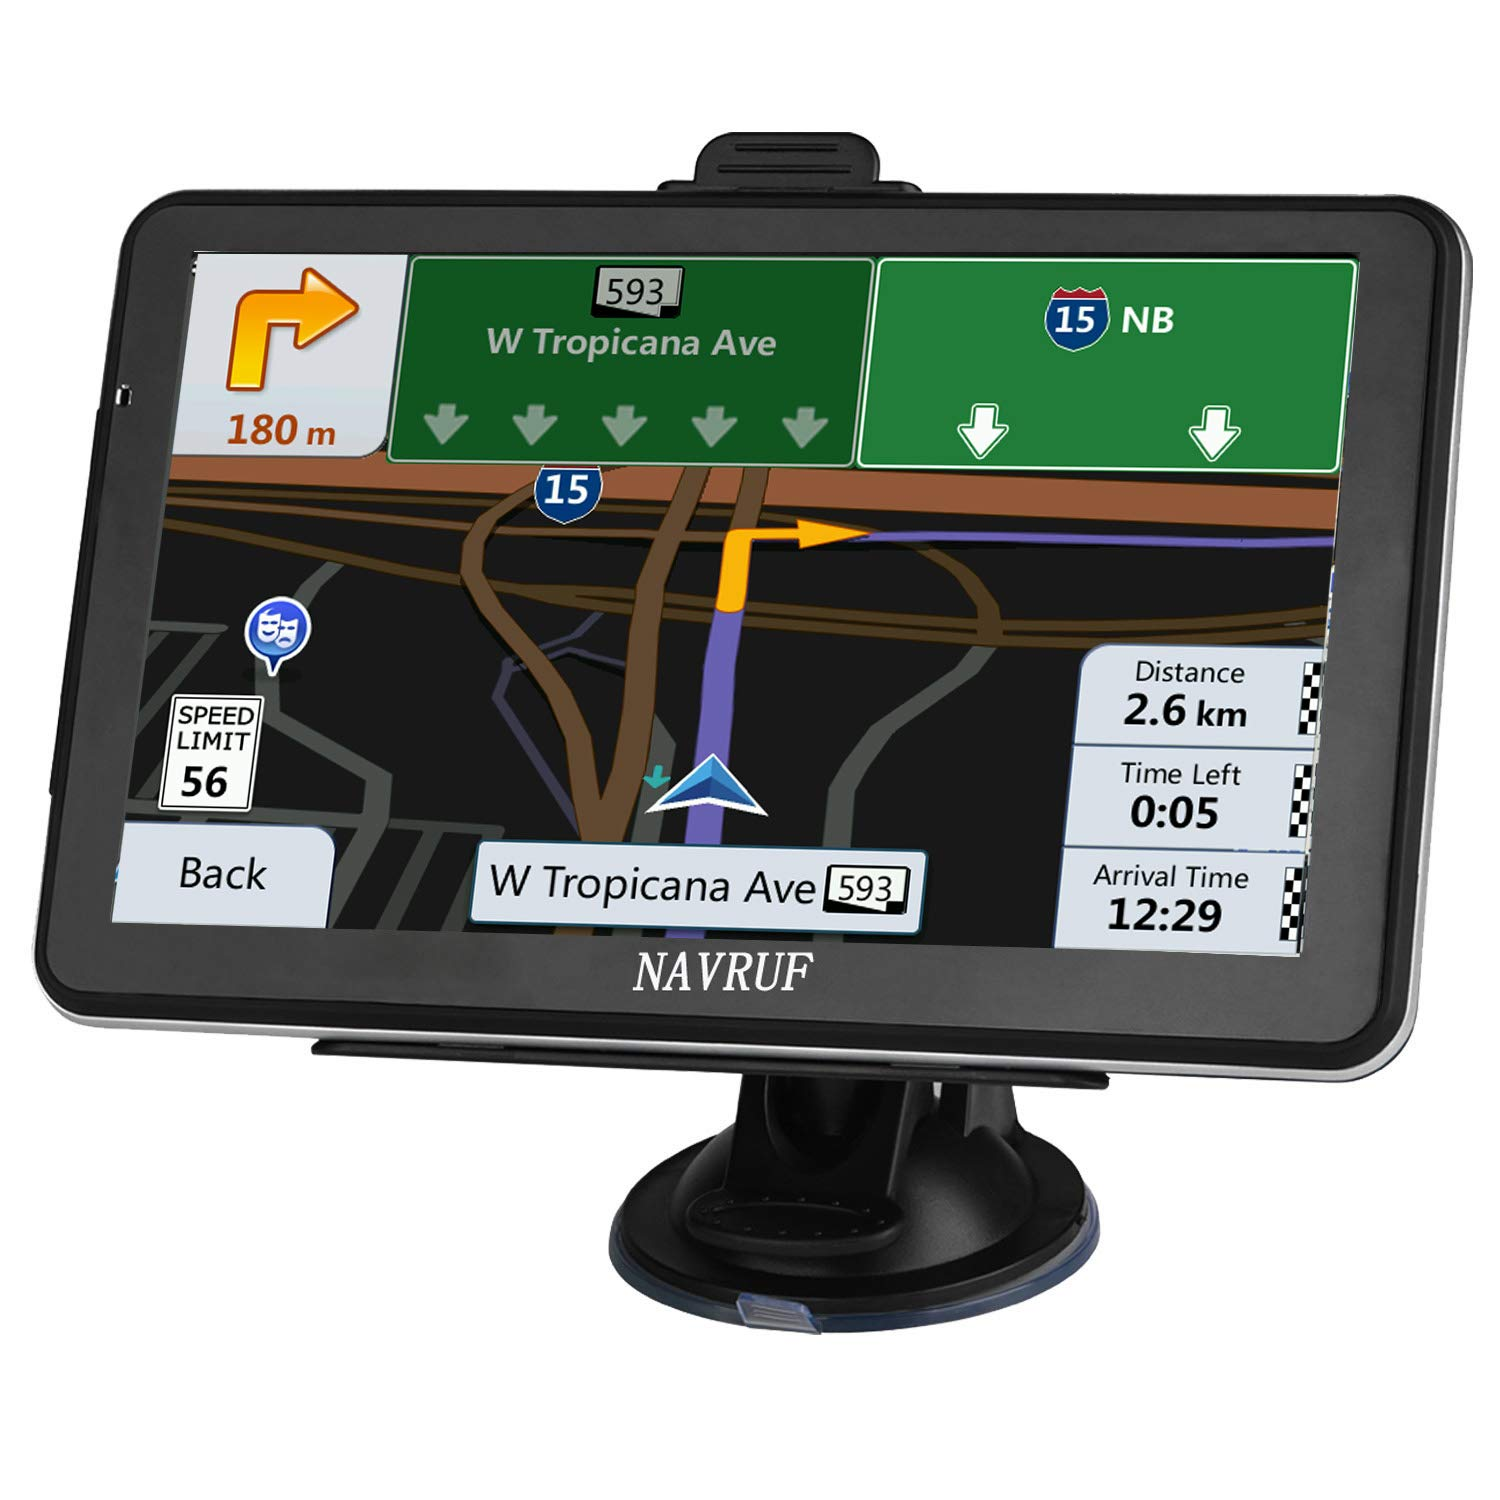 GPS Navigation for car, 7-inch HD 8GB Voice Prompt GPS Navigation System, Built-in North America map Contains (USA, Canada, Mexico Map) Lifetime Map Free Updates by NAVRUF